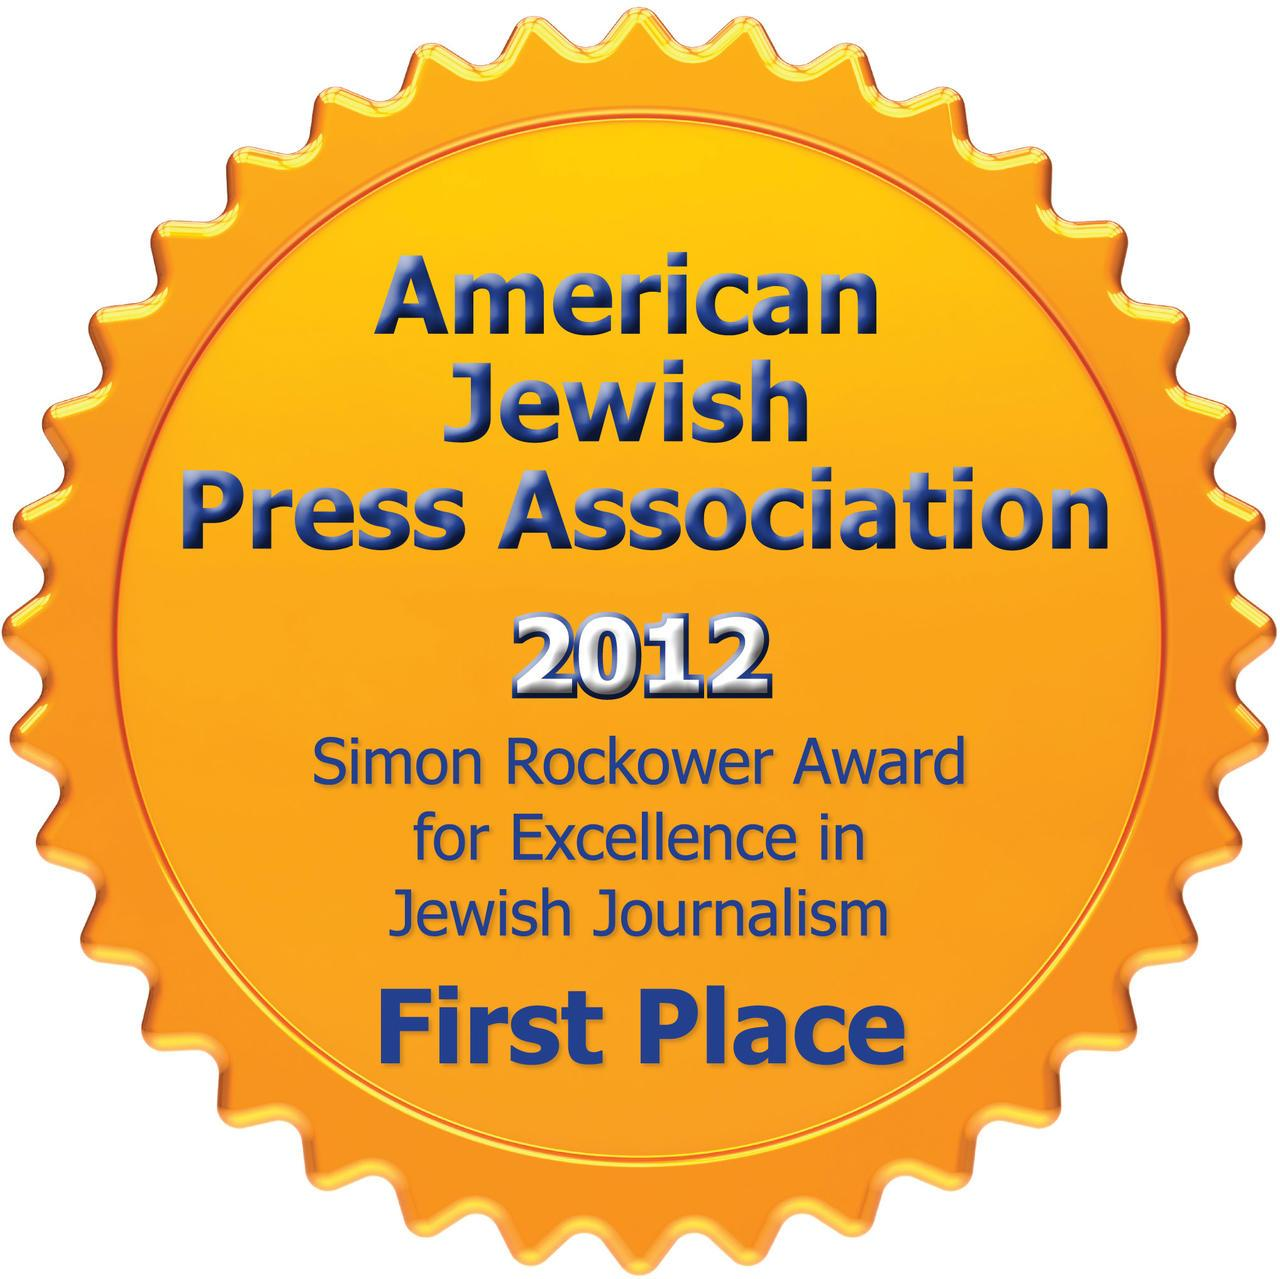 Simon Rockower Award